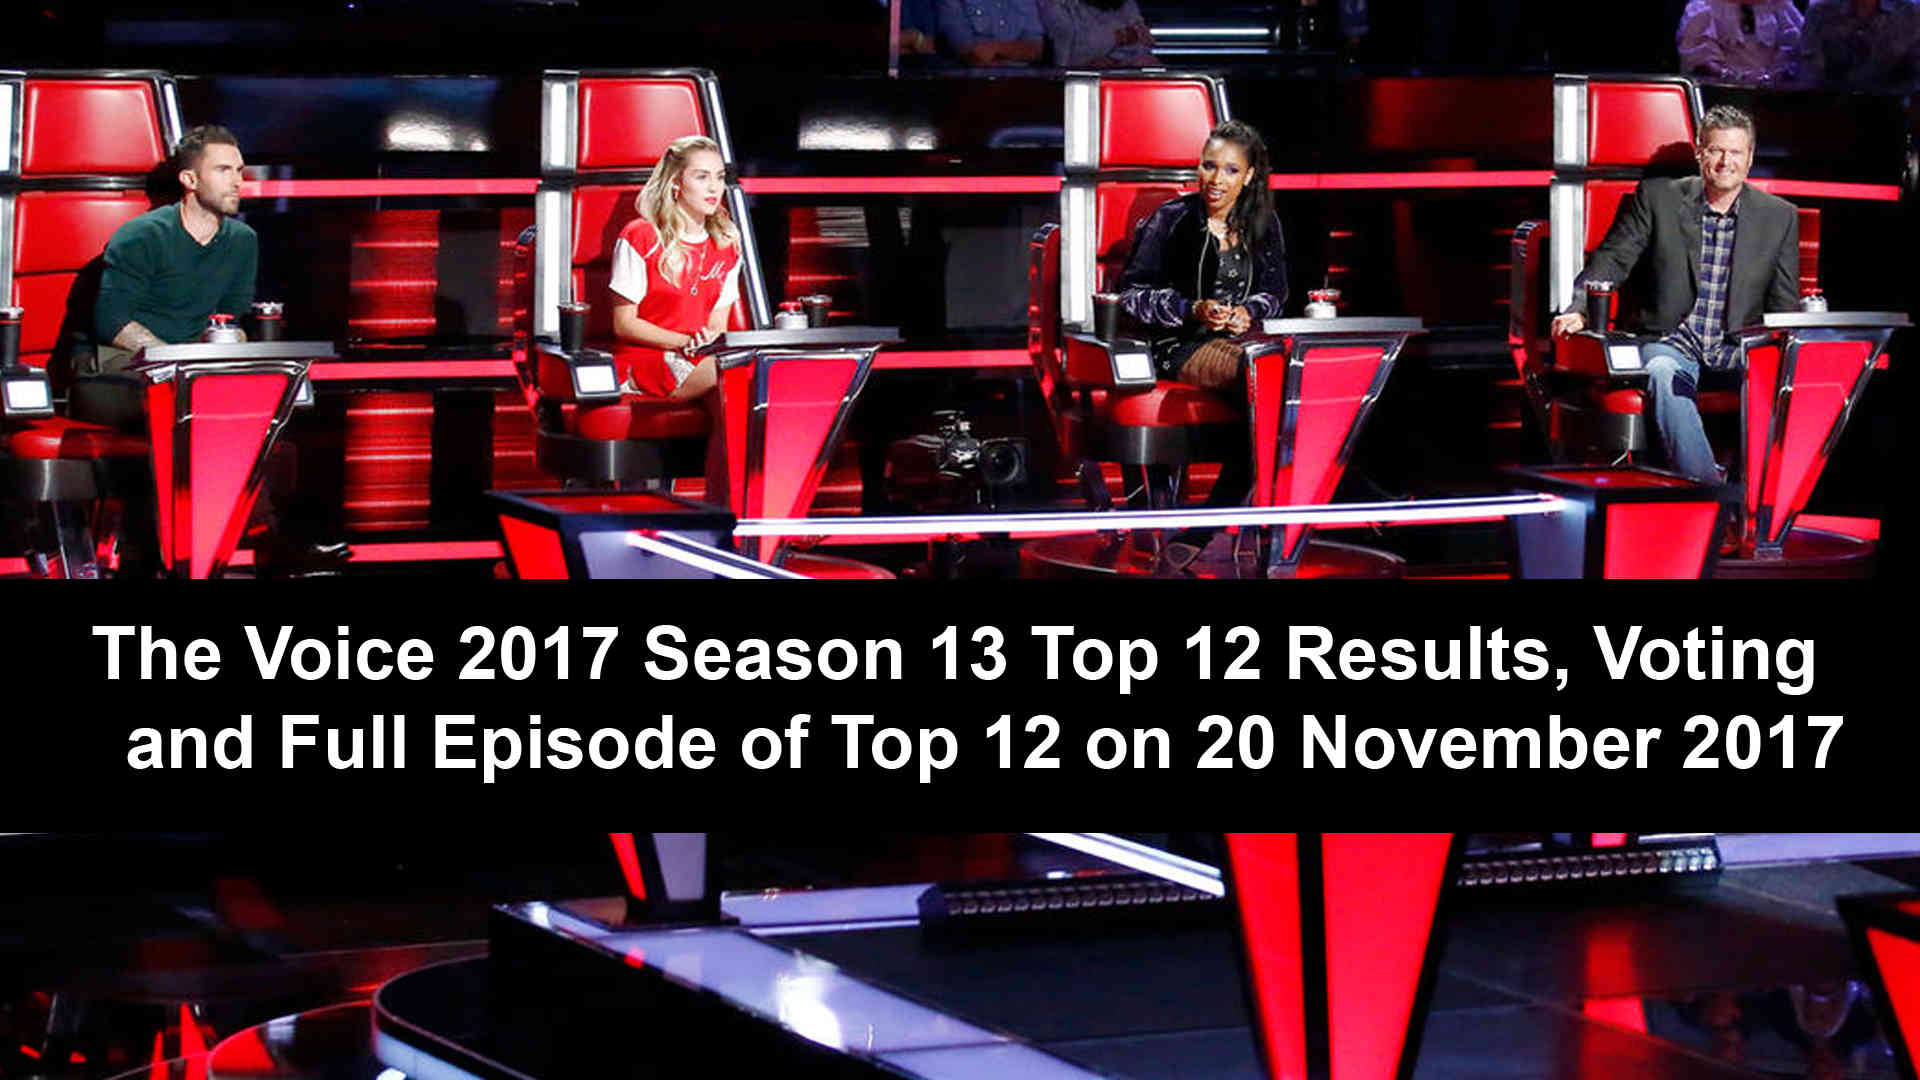 The Voice 2017 Season 13 Top 12 Results, Voting and Full Episode of Top 12 on 20 November 2017